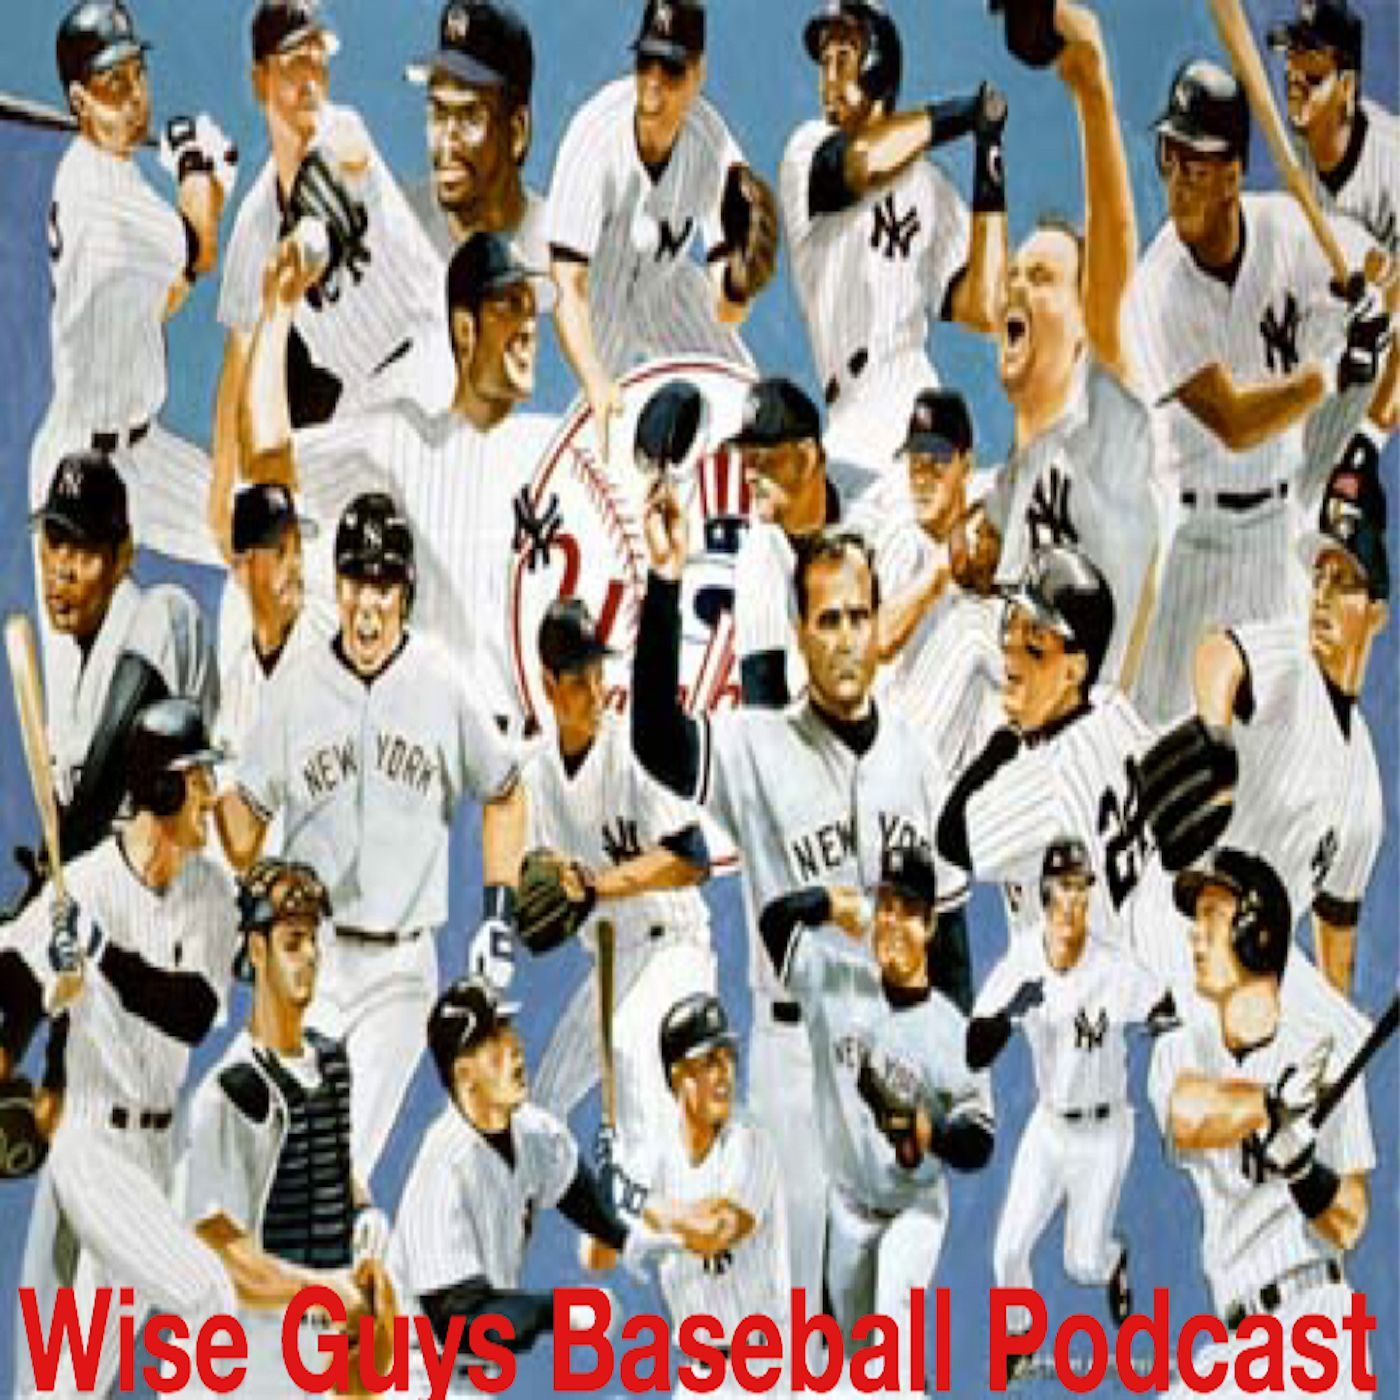 Ep. 2 Preview of the 2016 Yankees (Part 2)